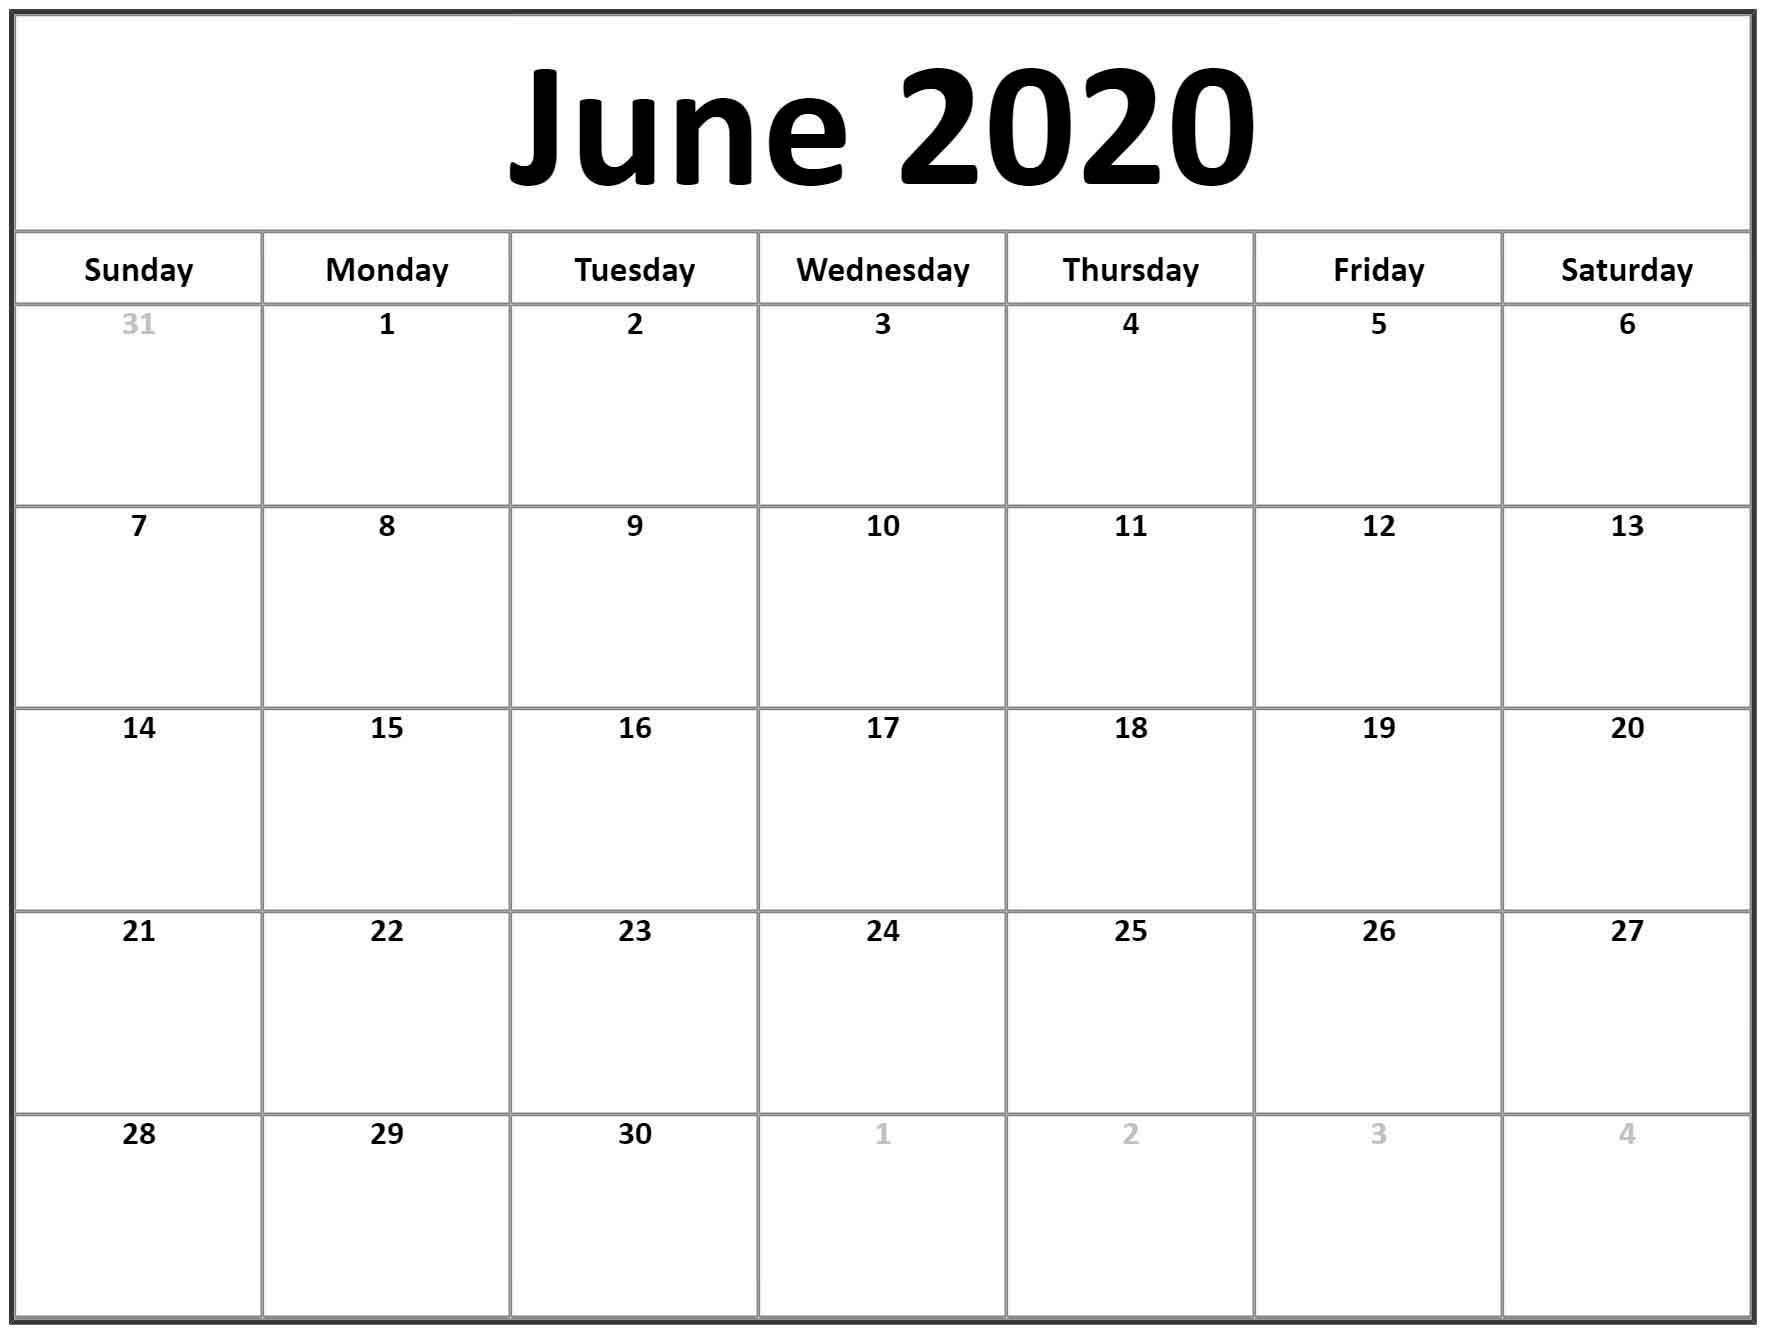 006 Fearsome June 2020 Monthly Calendar Template Example Full